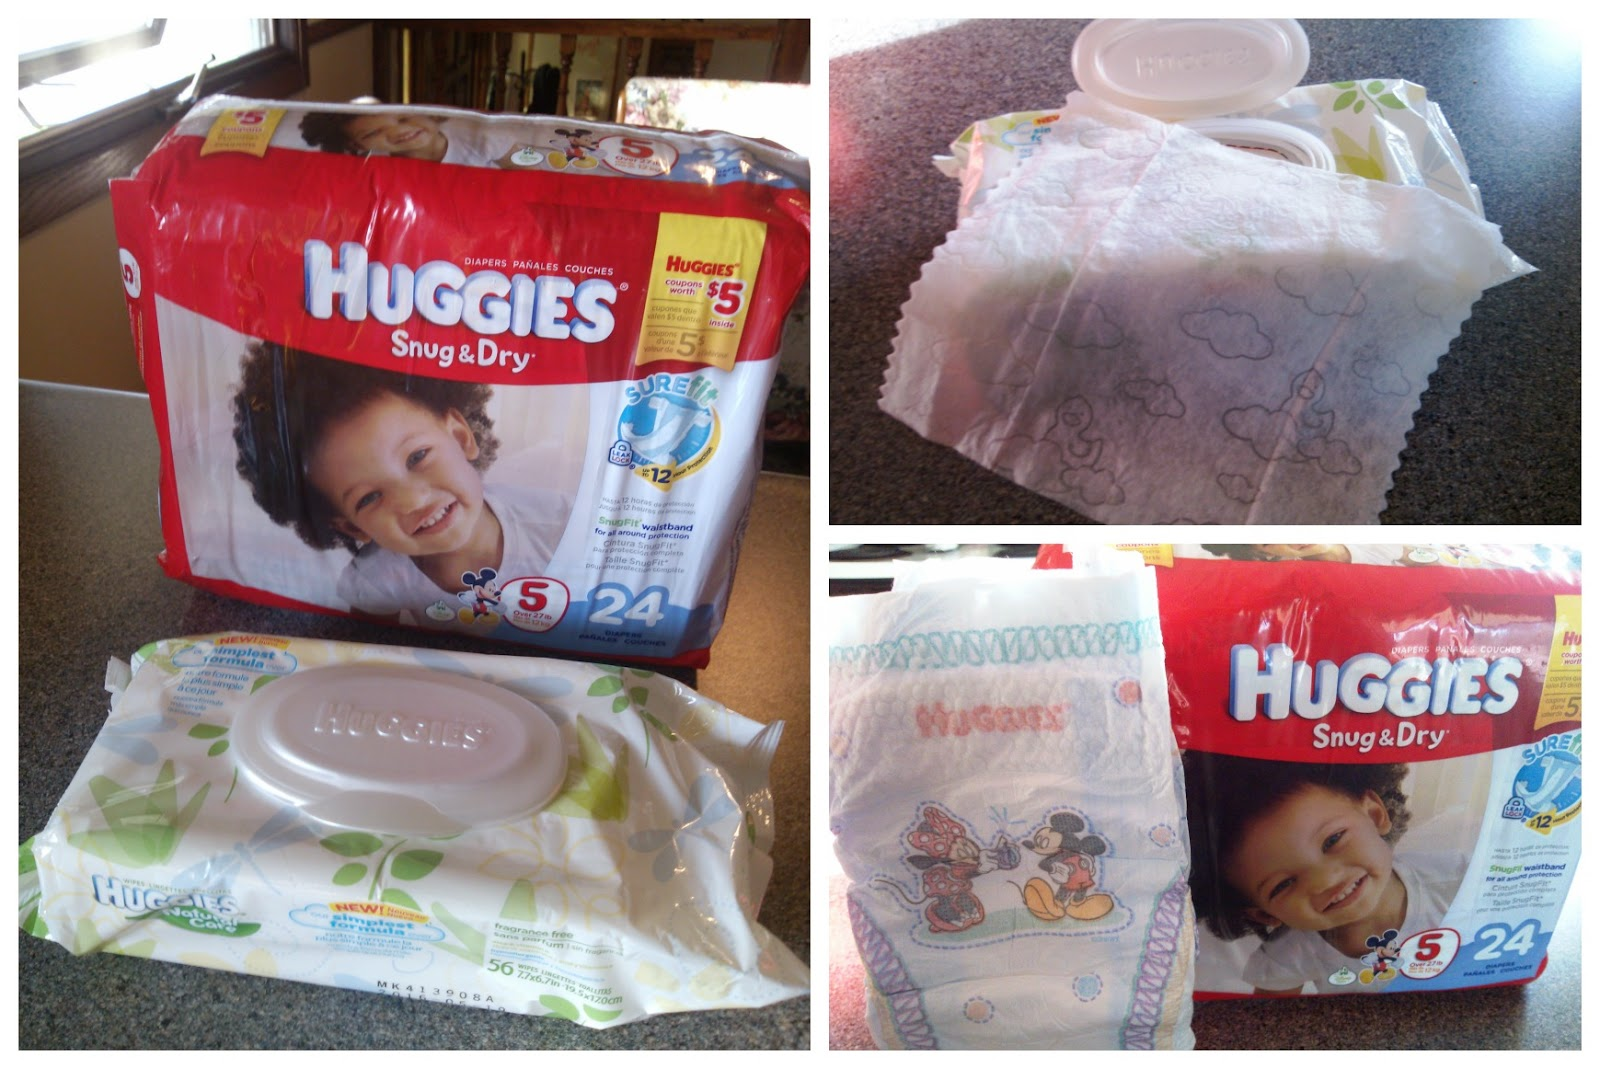 Huggies Snug & Dry Diapers + Natural Care Wipes at Target